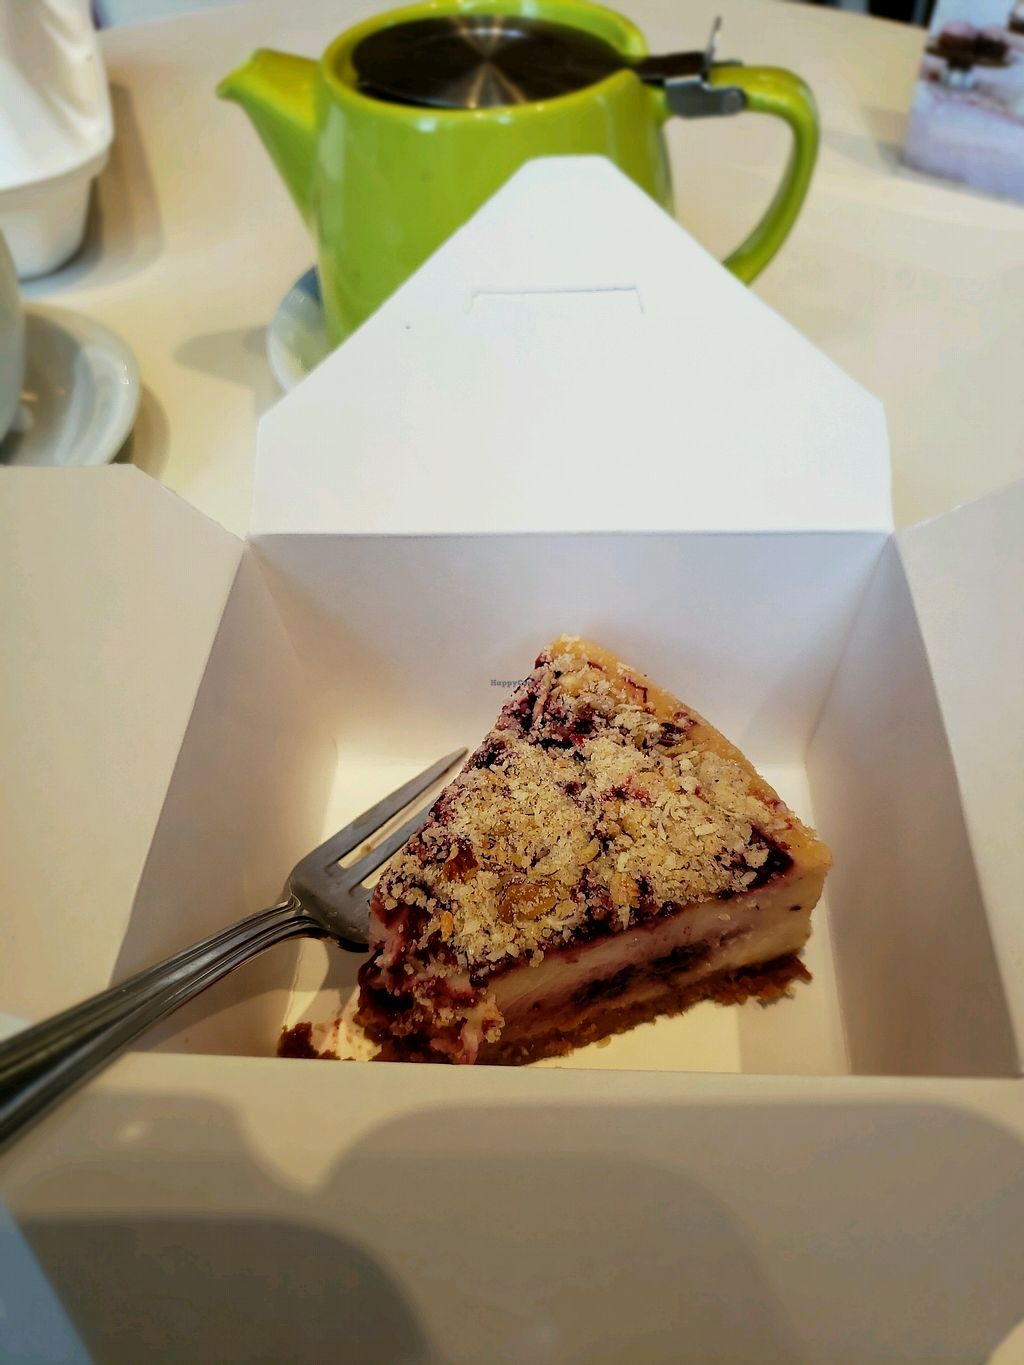 "Photo of Petunia's Pies and Pastries  by <a href=""/members/profile/MannaTea"">MannaTea</a> <br/>Marionberry Cheesecake <br/> April 5, 2018  - <a href='/contact/abuse/image/37248/381284'>Report</a>"